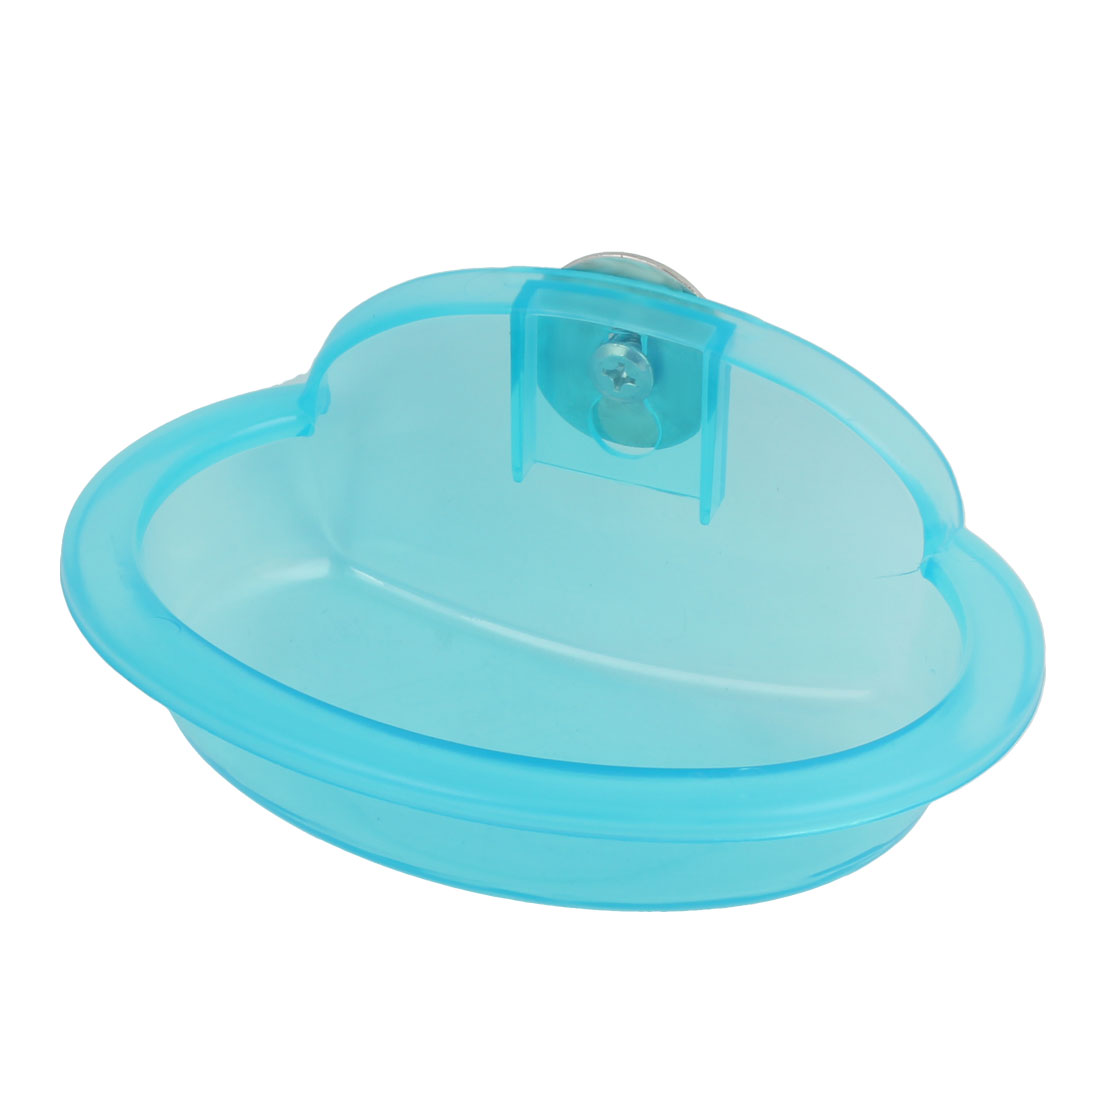 Pet Dog Doggie Plastic Oval Shaped Food Water Drinking Bowl Dish Feeder Sky Blue